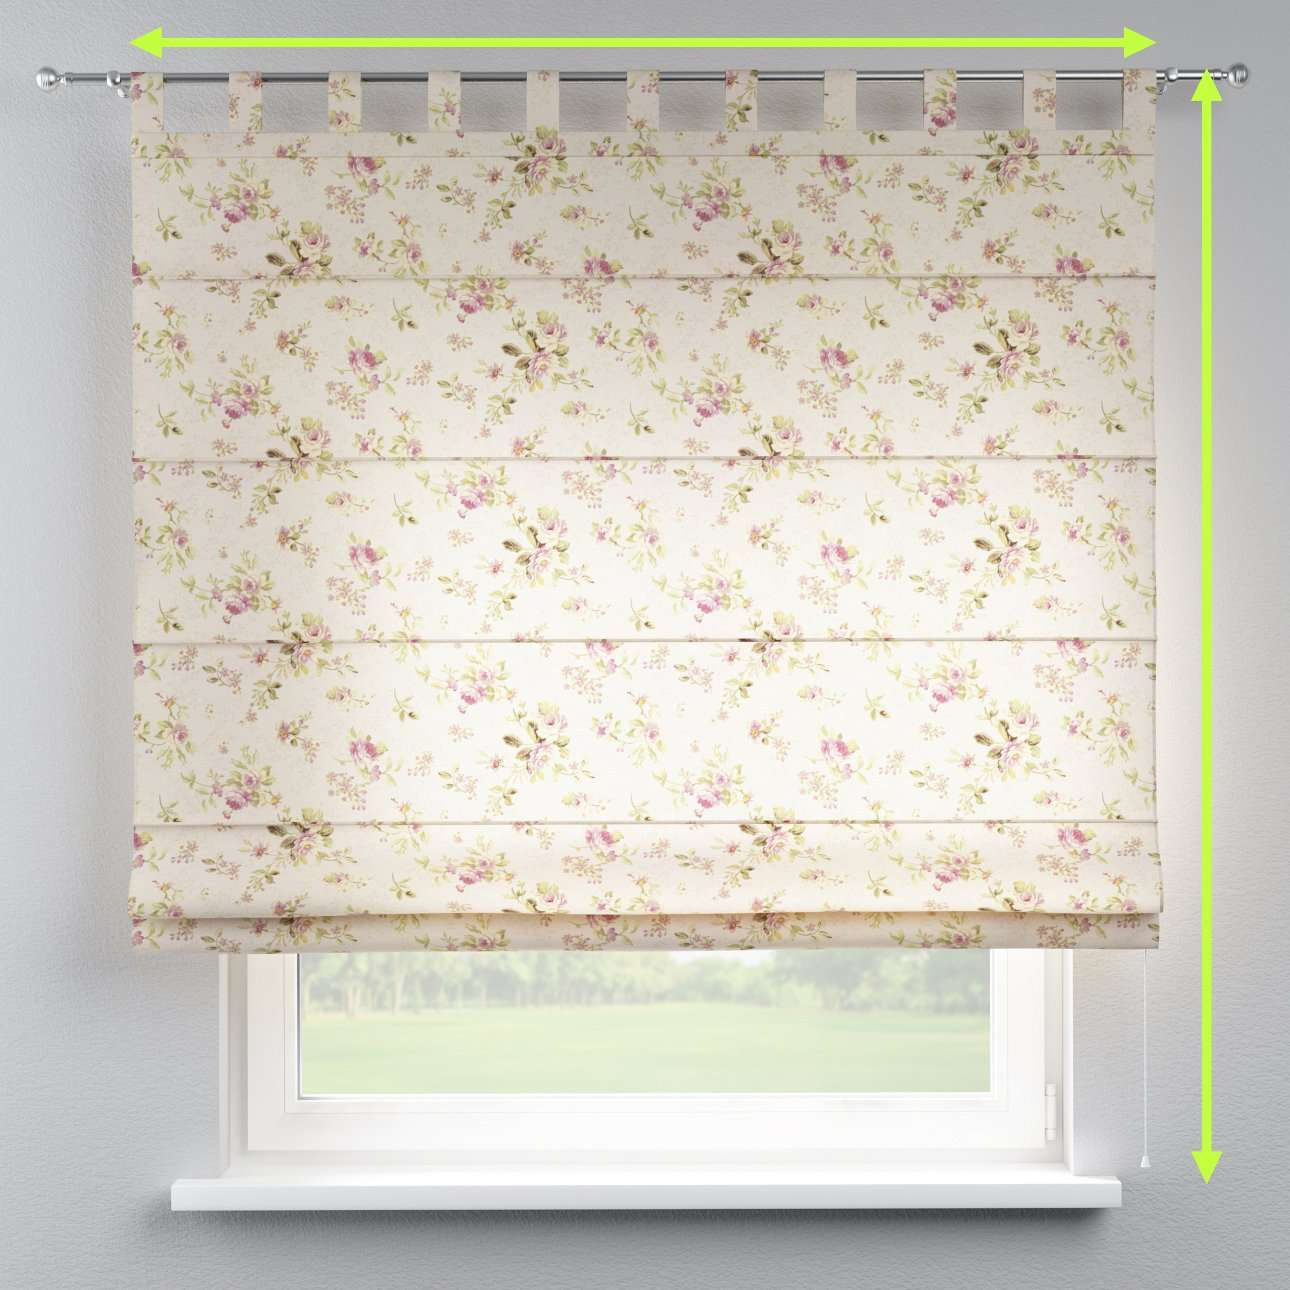 Verona tab top roman blind in collection Londres, fabric: 122-07